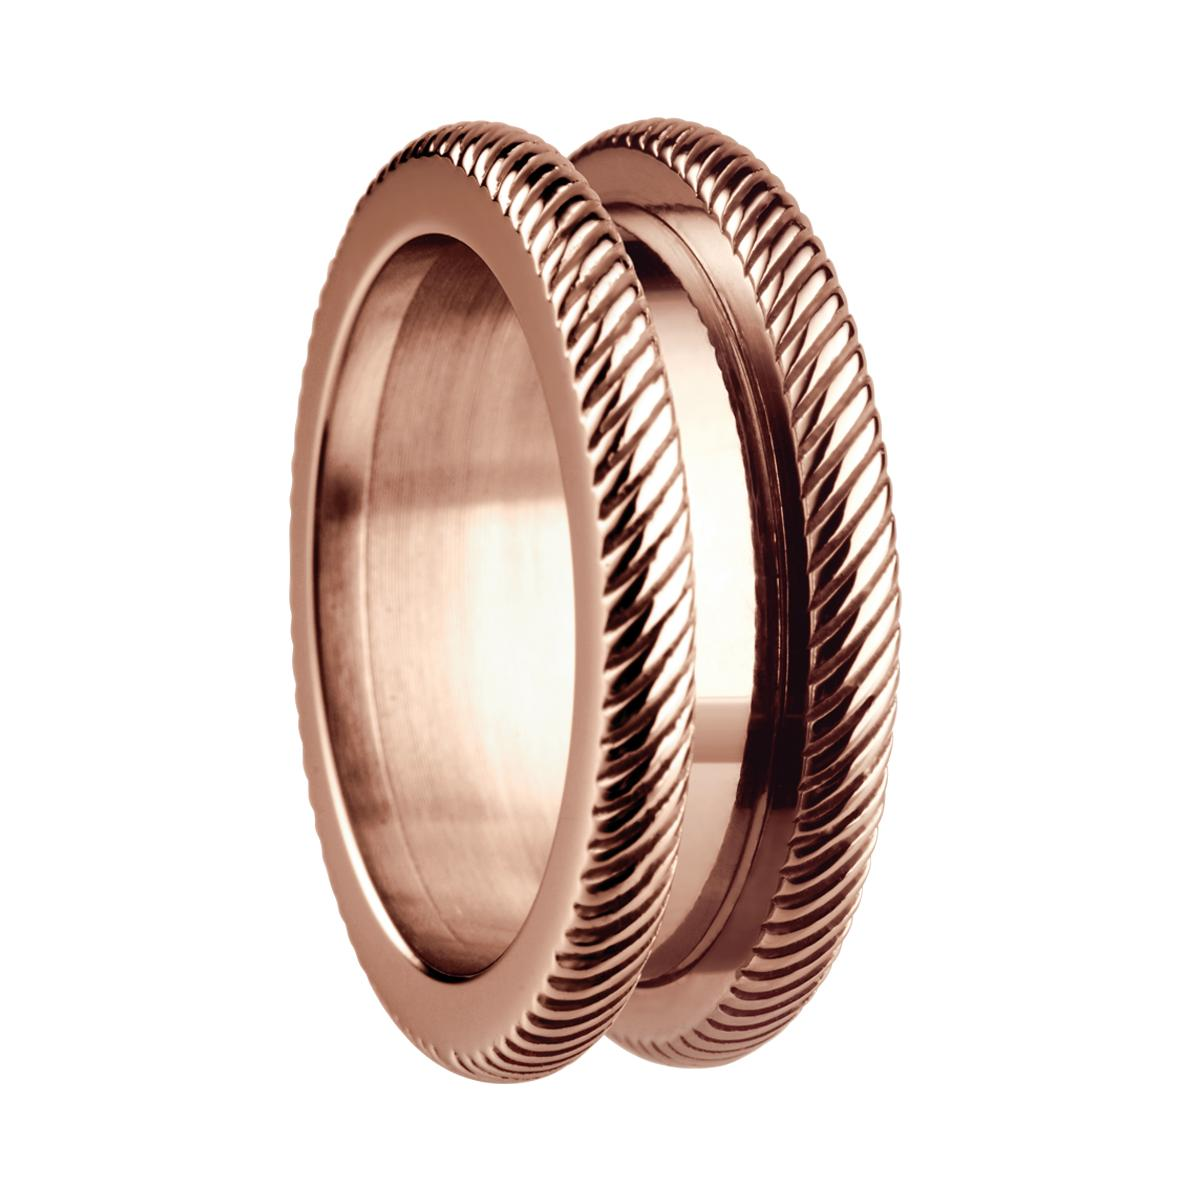 Bering Outer Ring 5213063 1